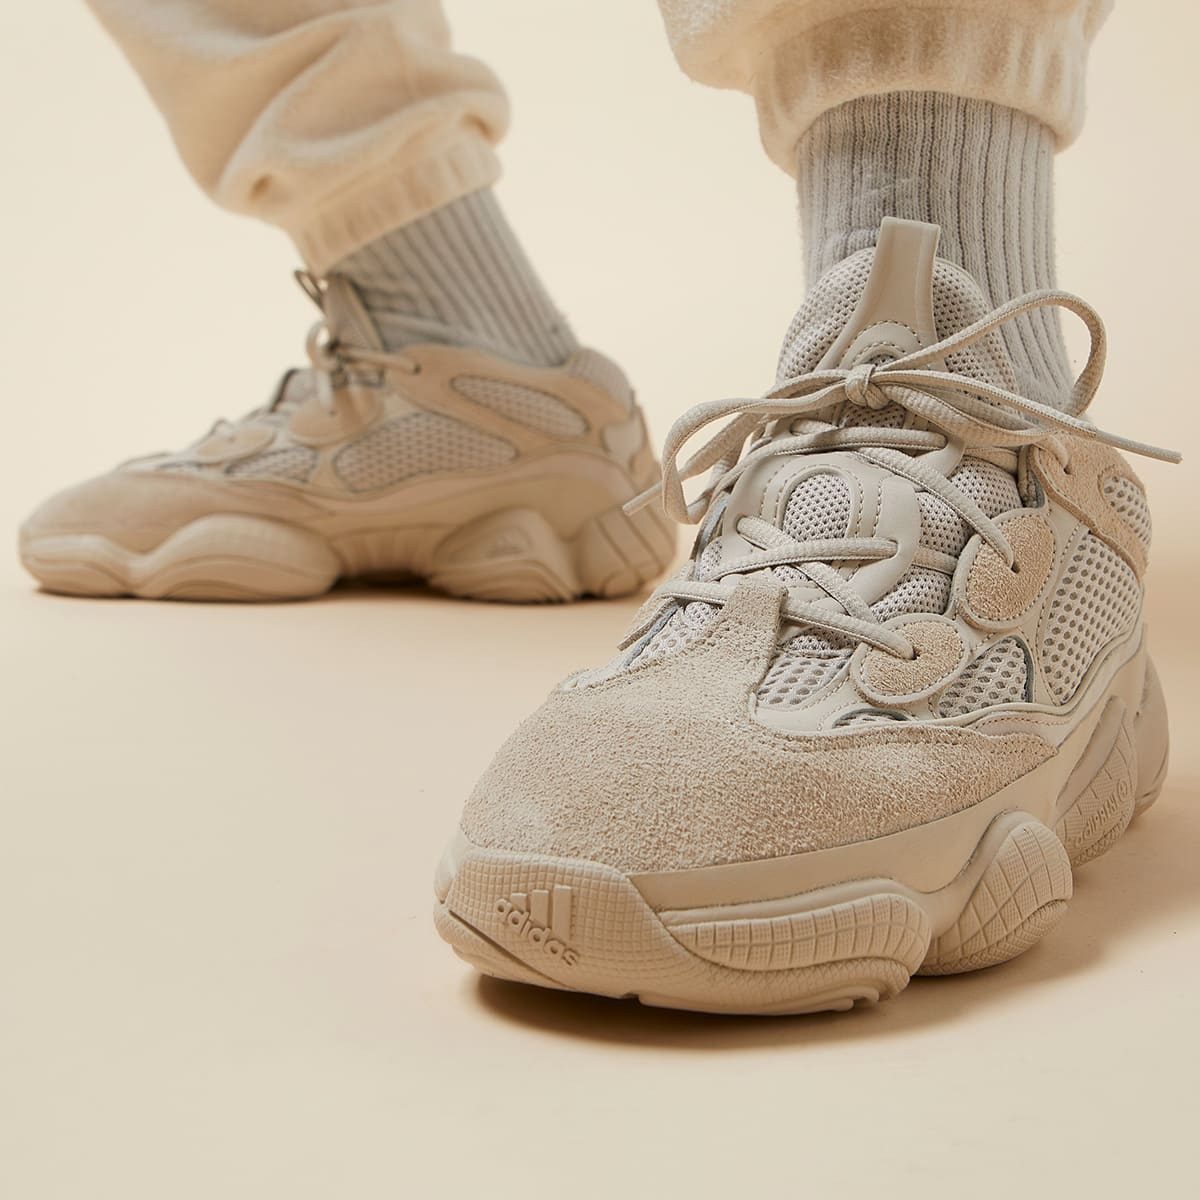 size 40 26b0a 9d383 END. Features | Take a Closer Look at the adidas + KANYE ...